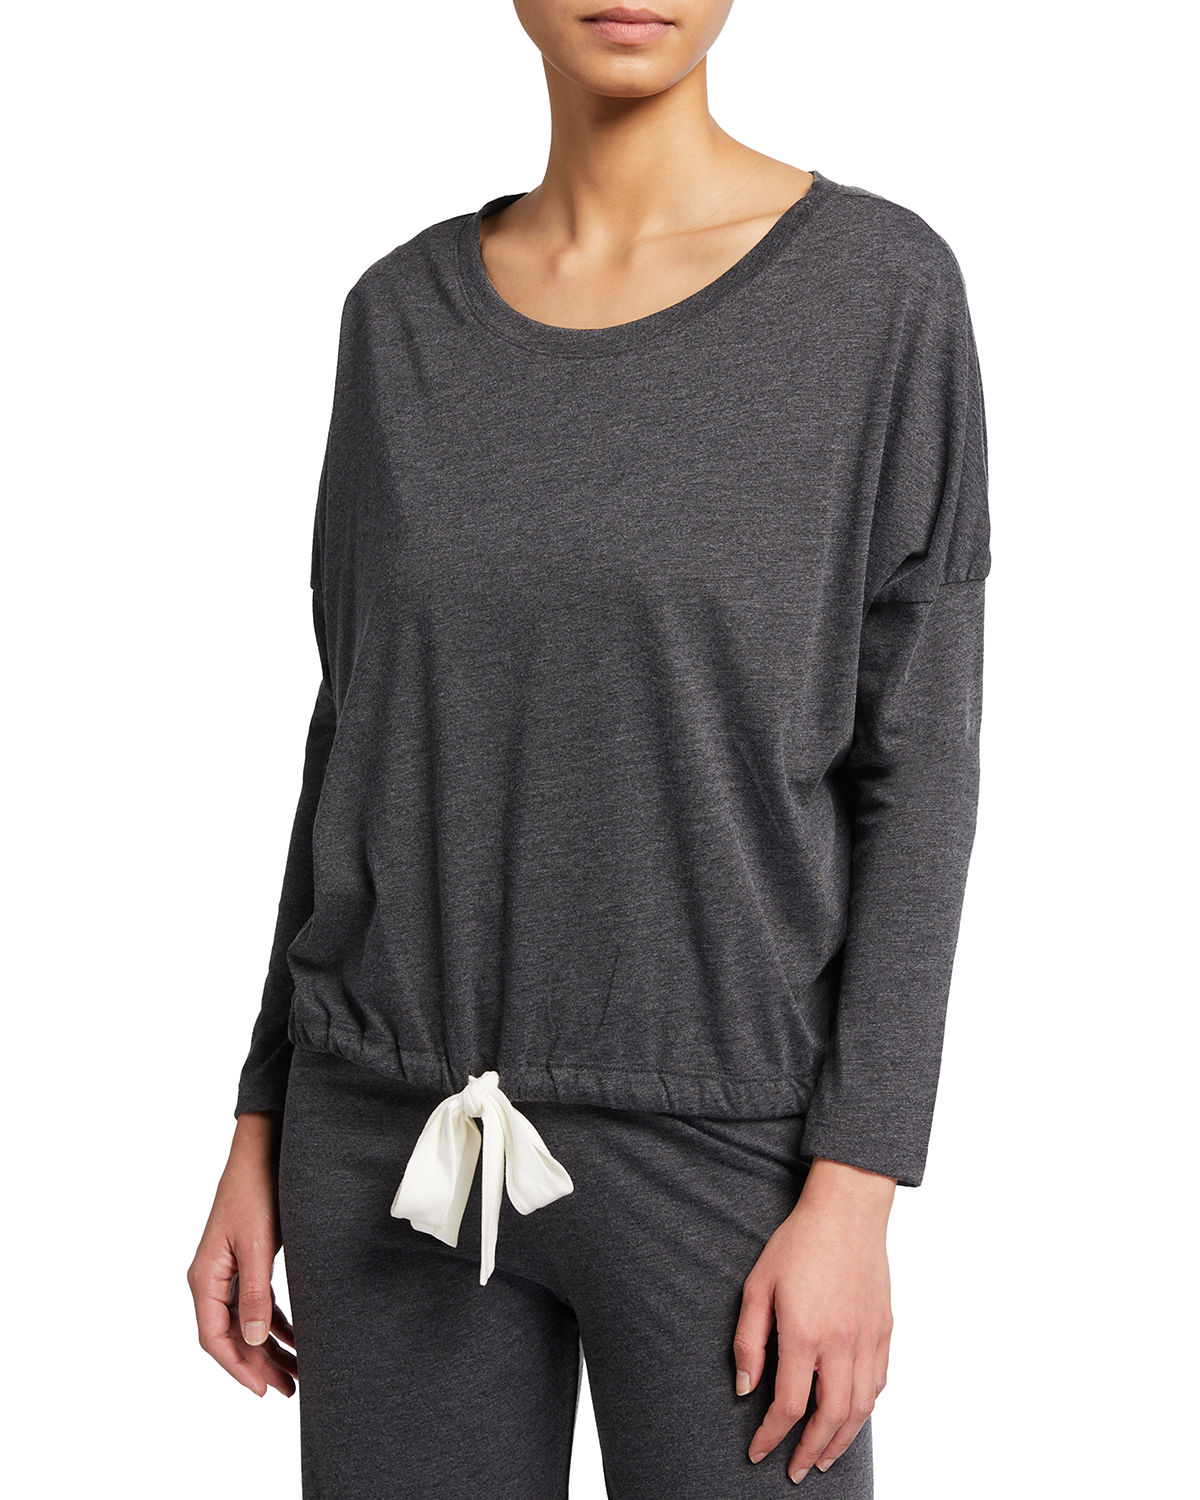 Eberjey Heather Slouchy Drawstring Lounge Tee In Charcoal